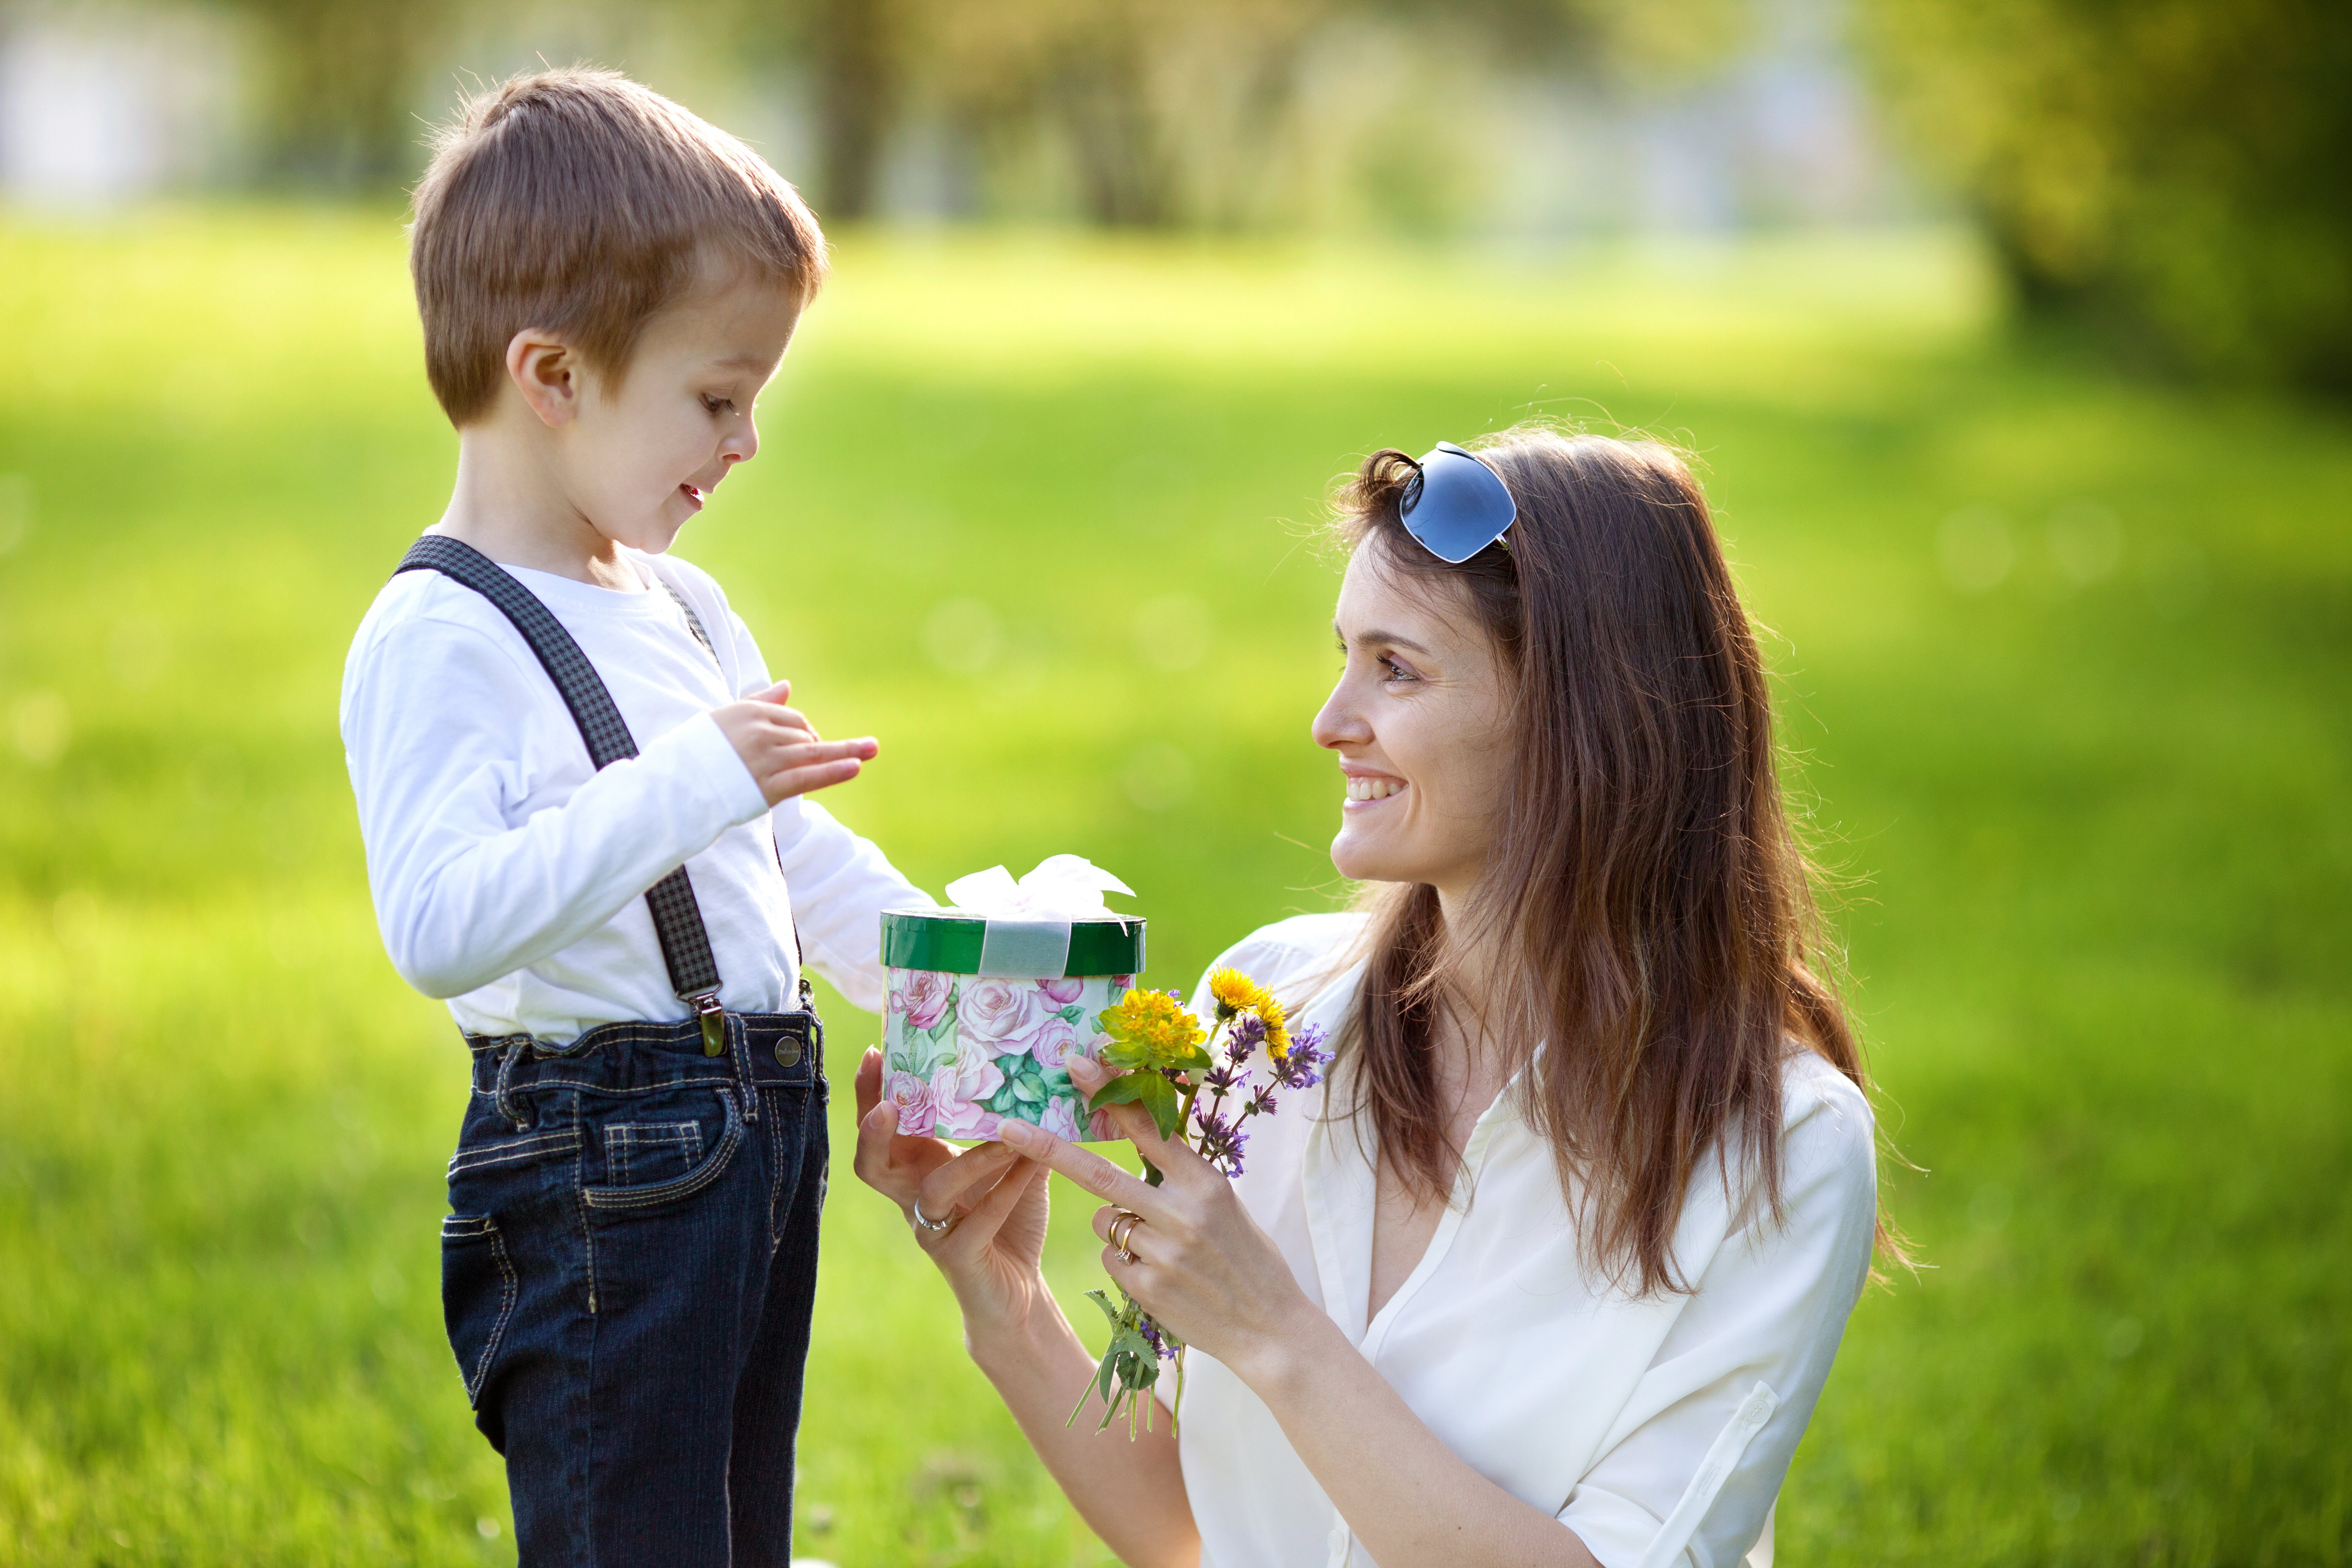 Beautiful kid and mom in spring park, flower and present. Mothers day celebration concept